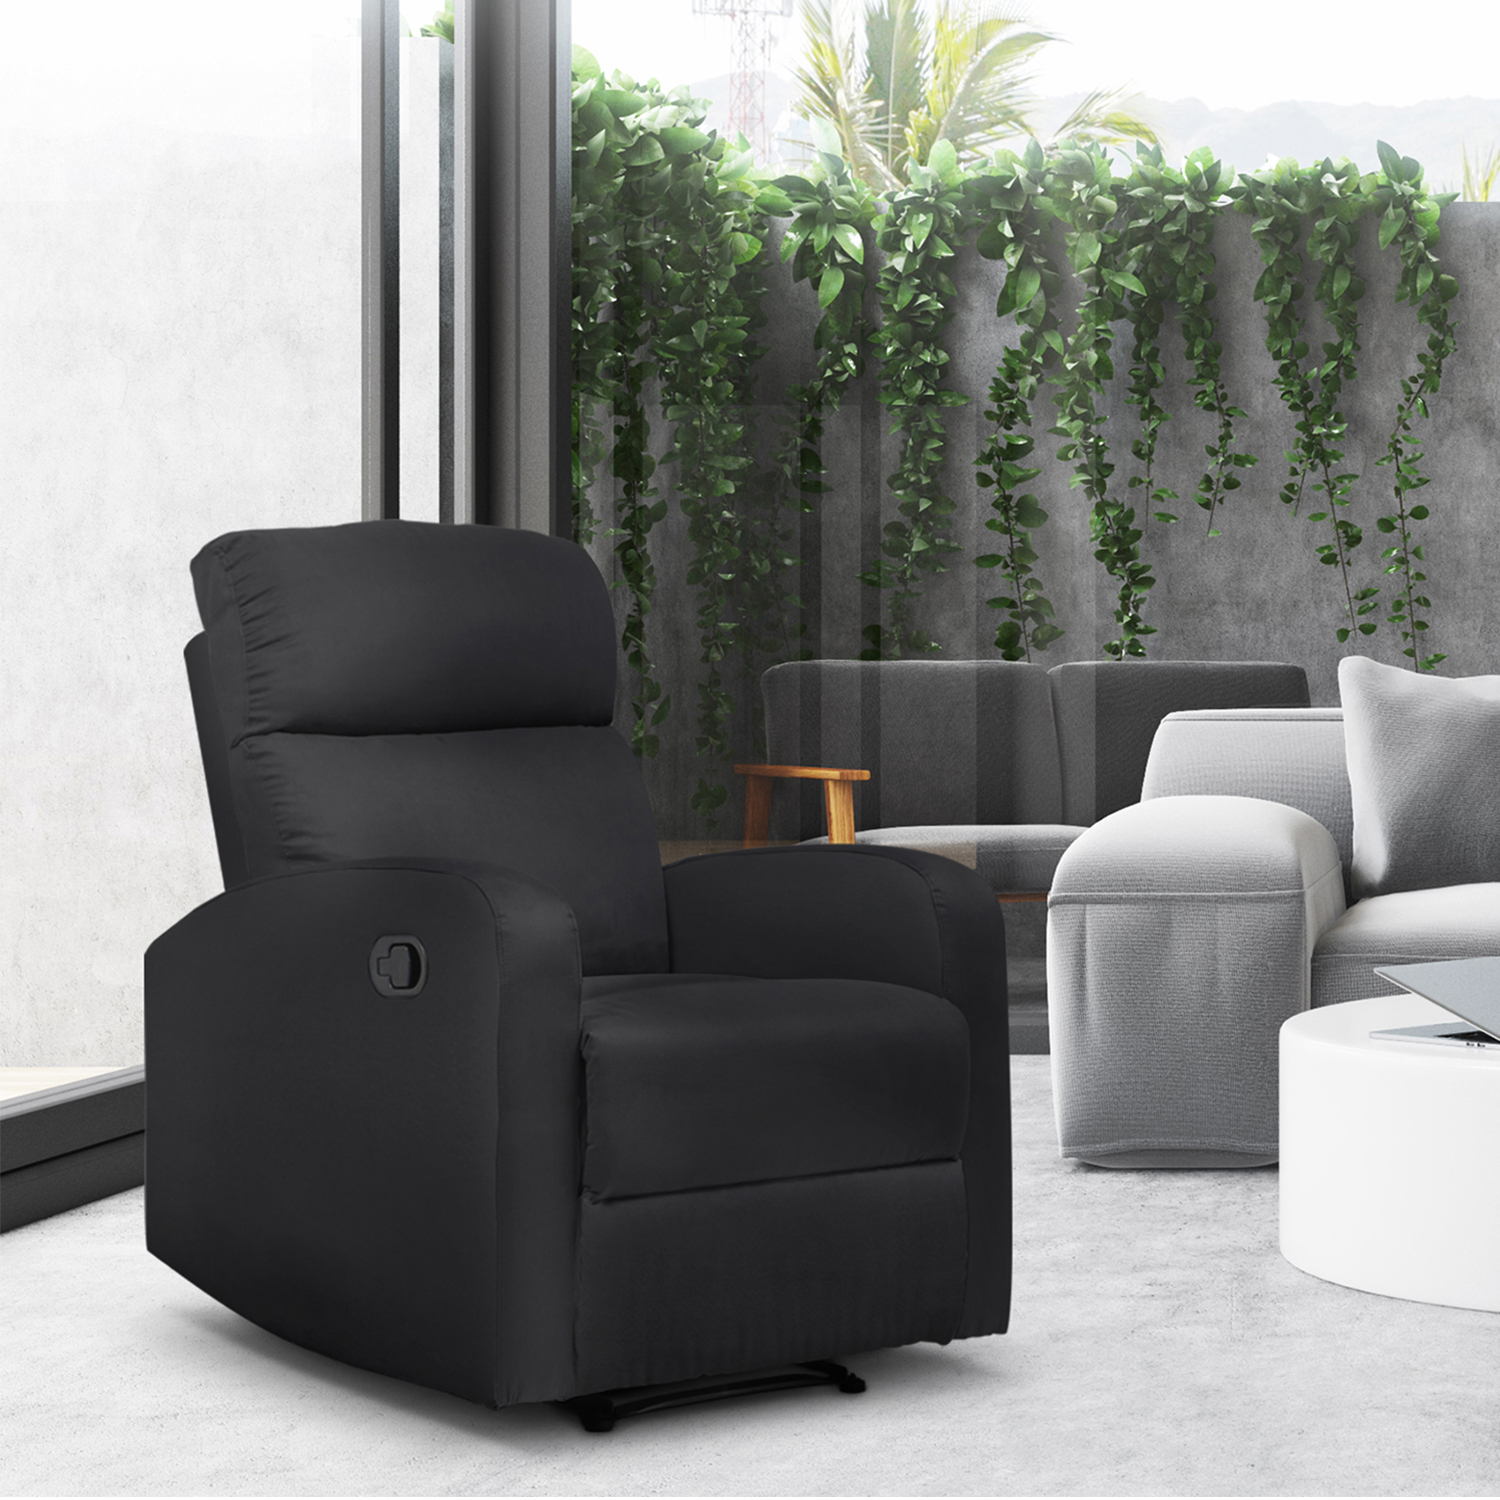 Fauteuil Relax Jaune Moutarde fauteuil relaxation inclinable noir tissu microfibre idmarket